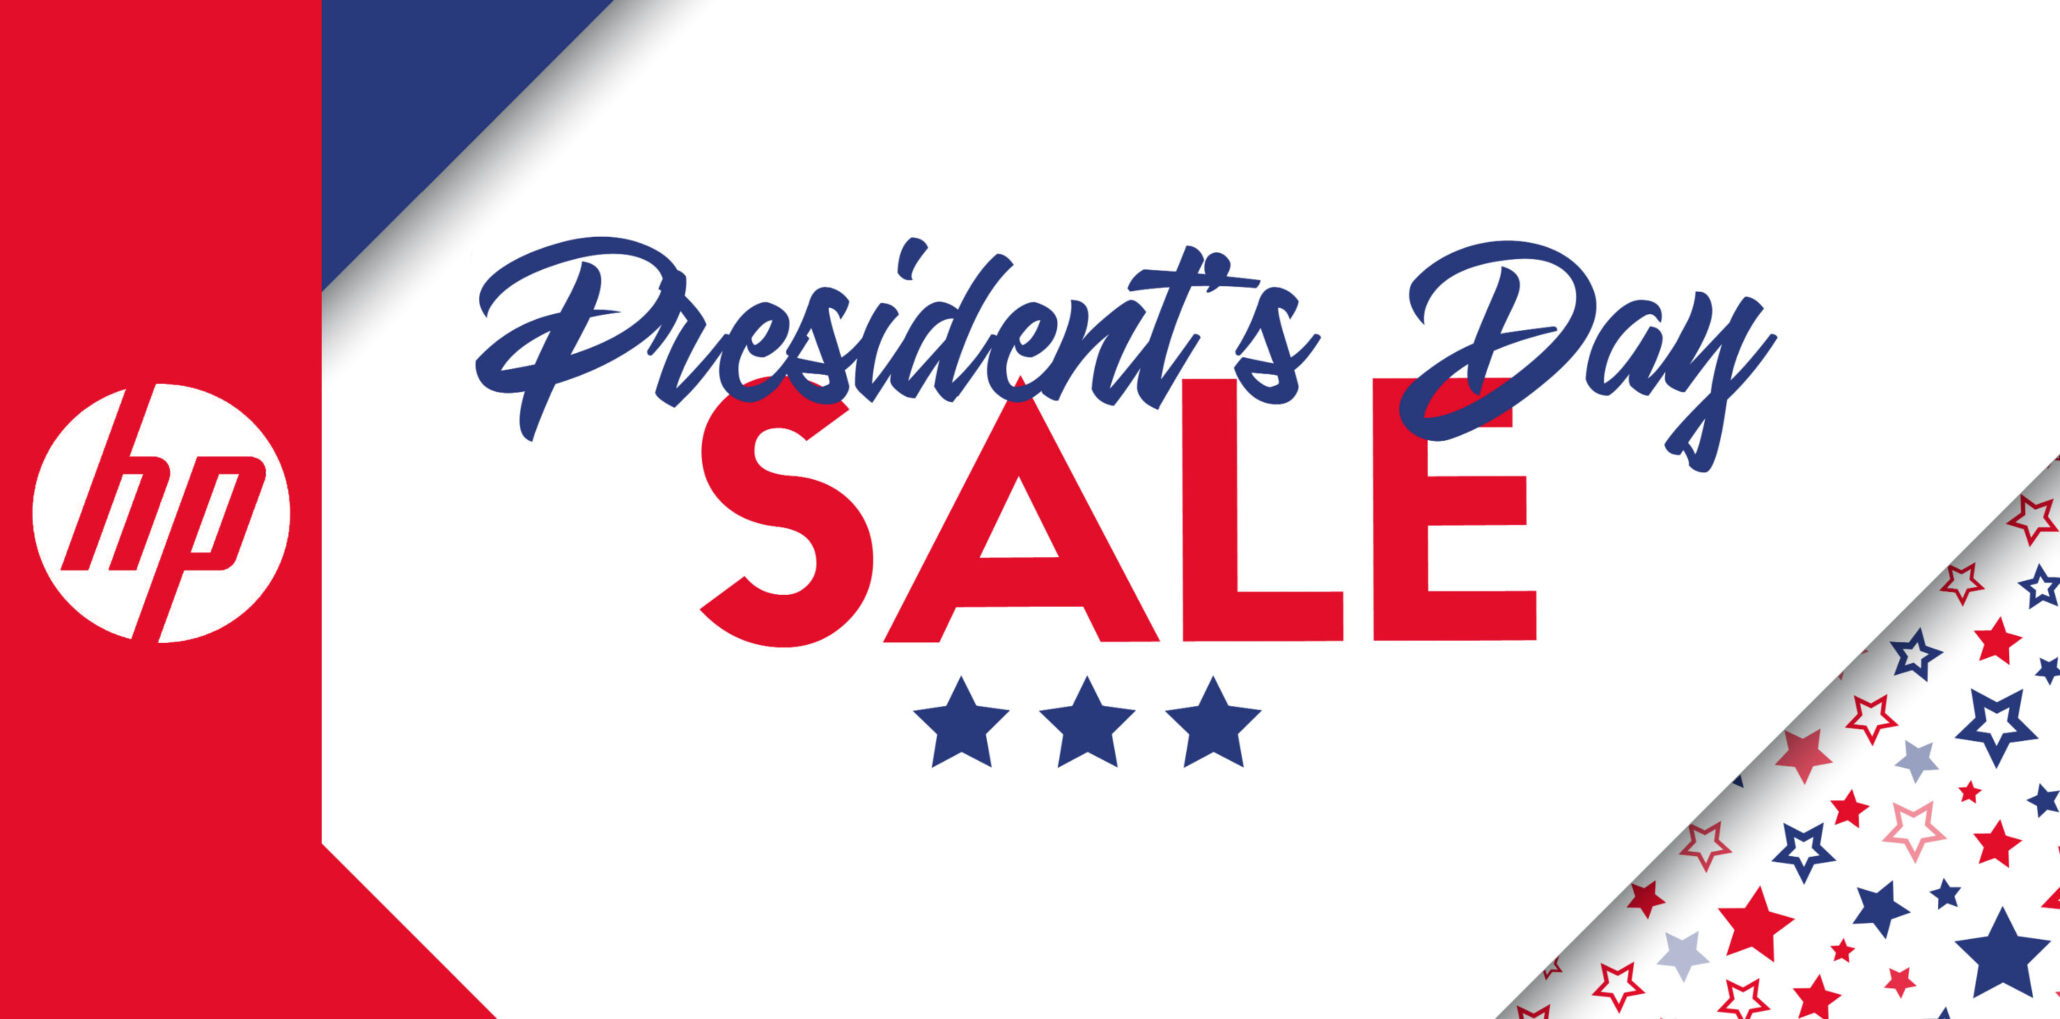 HP's President's Day Sale Is Now Live! Save Up To $1591 With